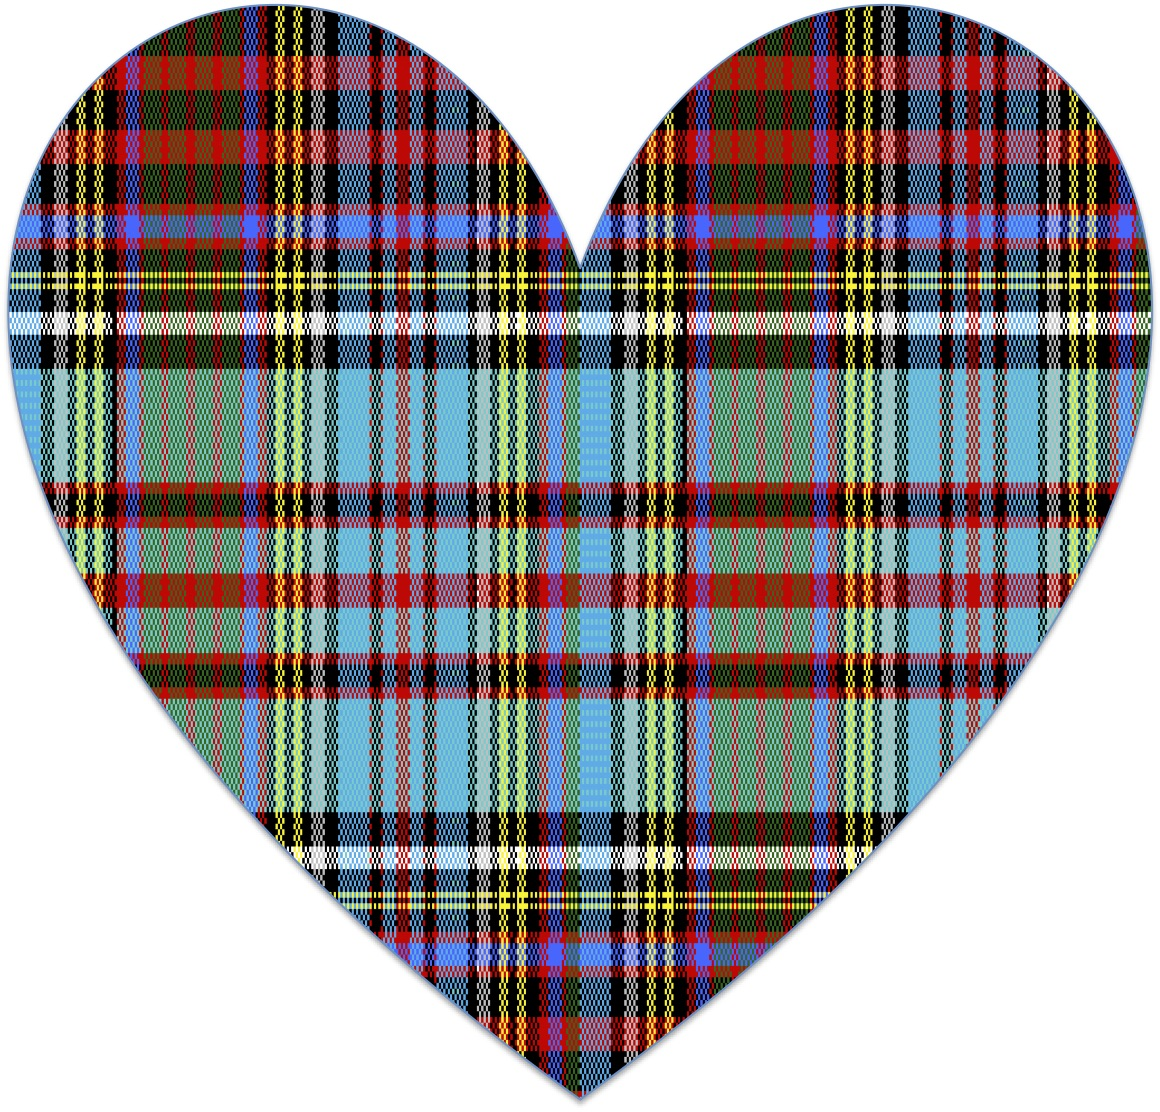 How To Make A Tartan Heart Image In Excel